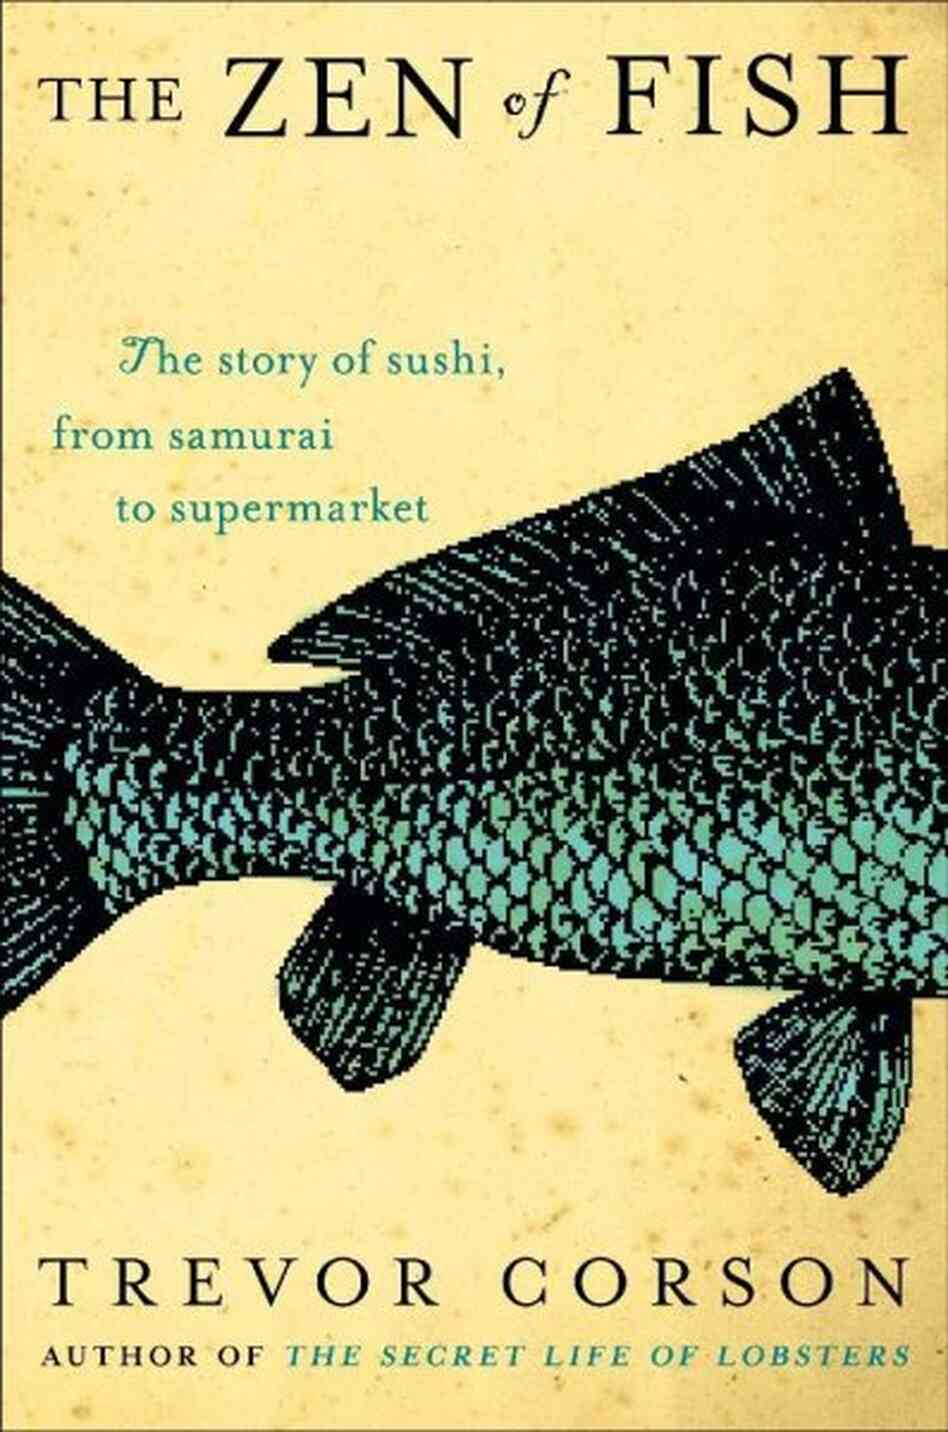 The Zen of Fish